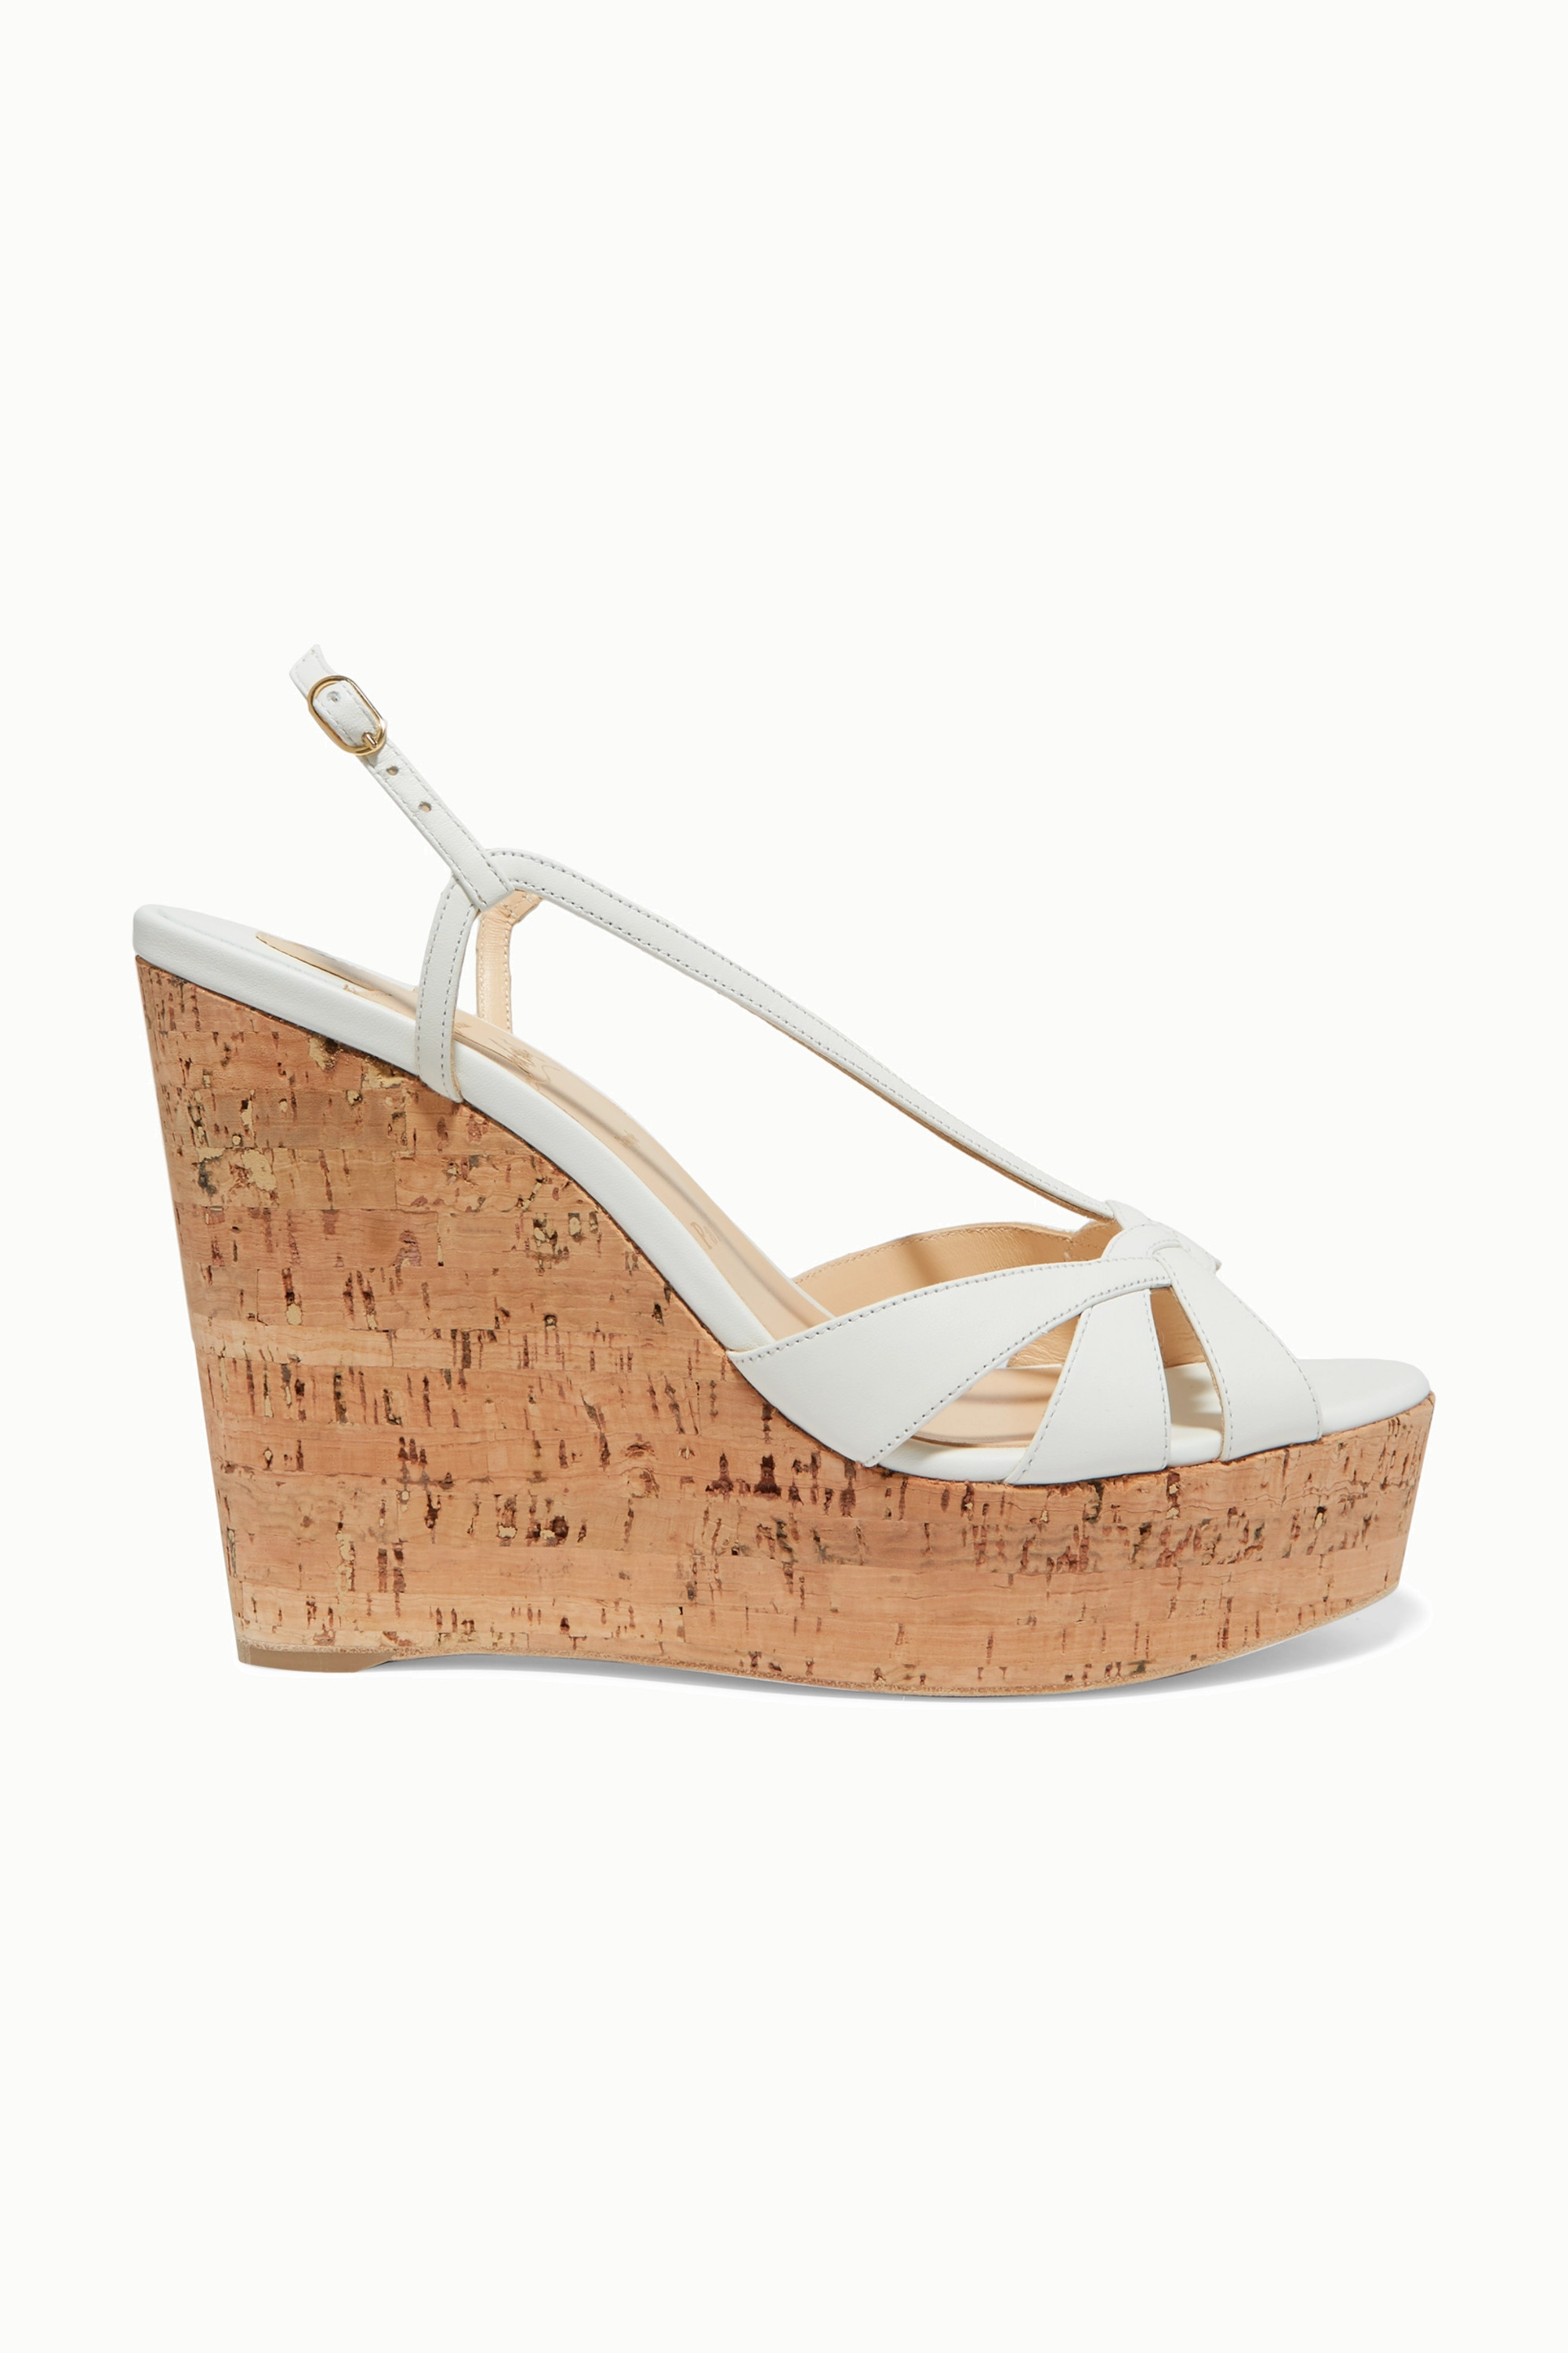 Christian Louboutin Lady Wedgy 120 leather wedge sandals